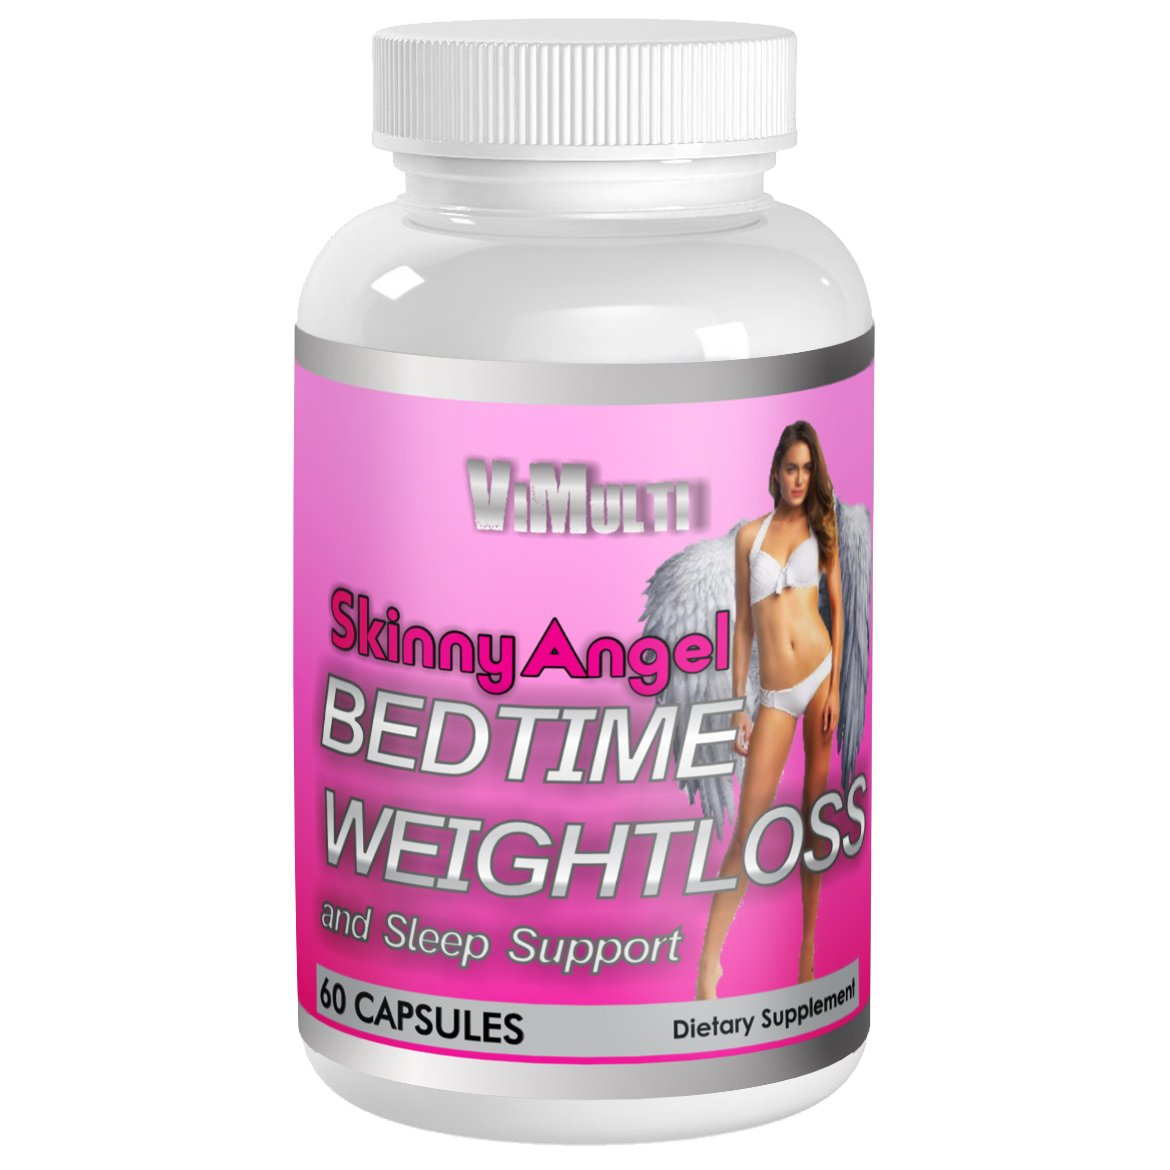 Skinny Angel NIGHT TIME WEIGHT LOSS FAT BURNER SLEEP AID. Night Time Fat Burner With Melatonin Natural Sleep Aid Weight Loss Pills Help End Insomnia While Burning Fat.